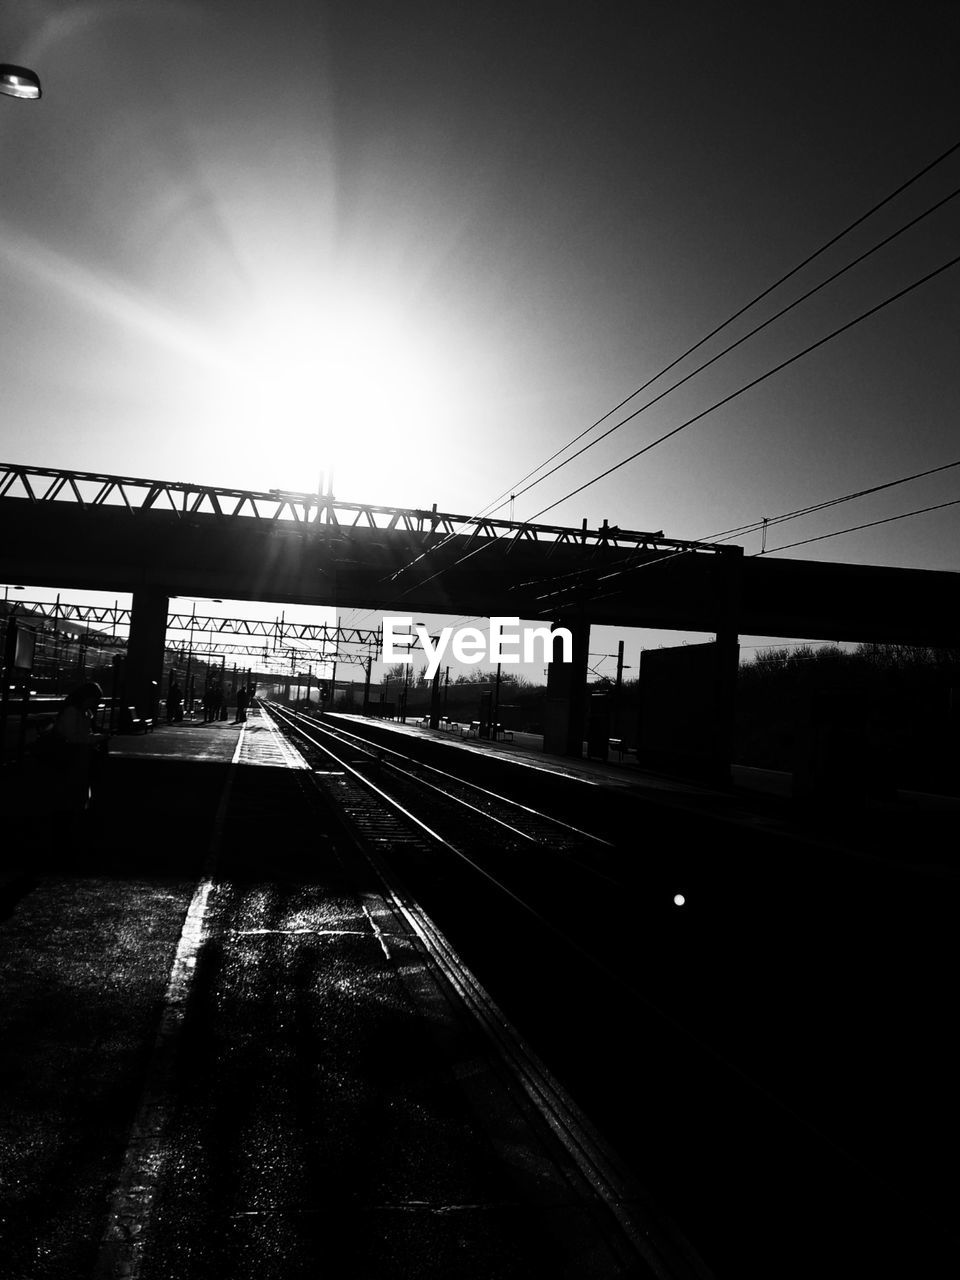 transportation, railroad track, rail transportation, cable, connection, sky, sun, no people, public transportation, built structure, outdoors, clear sky, day, architecture